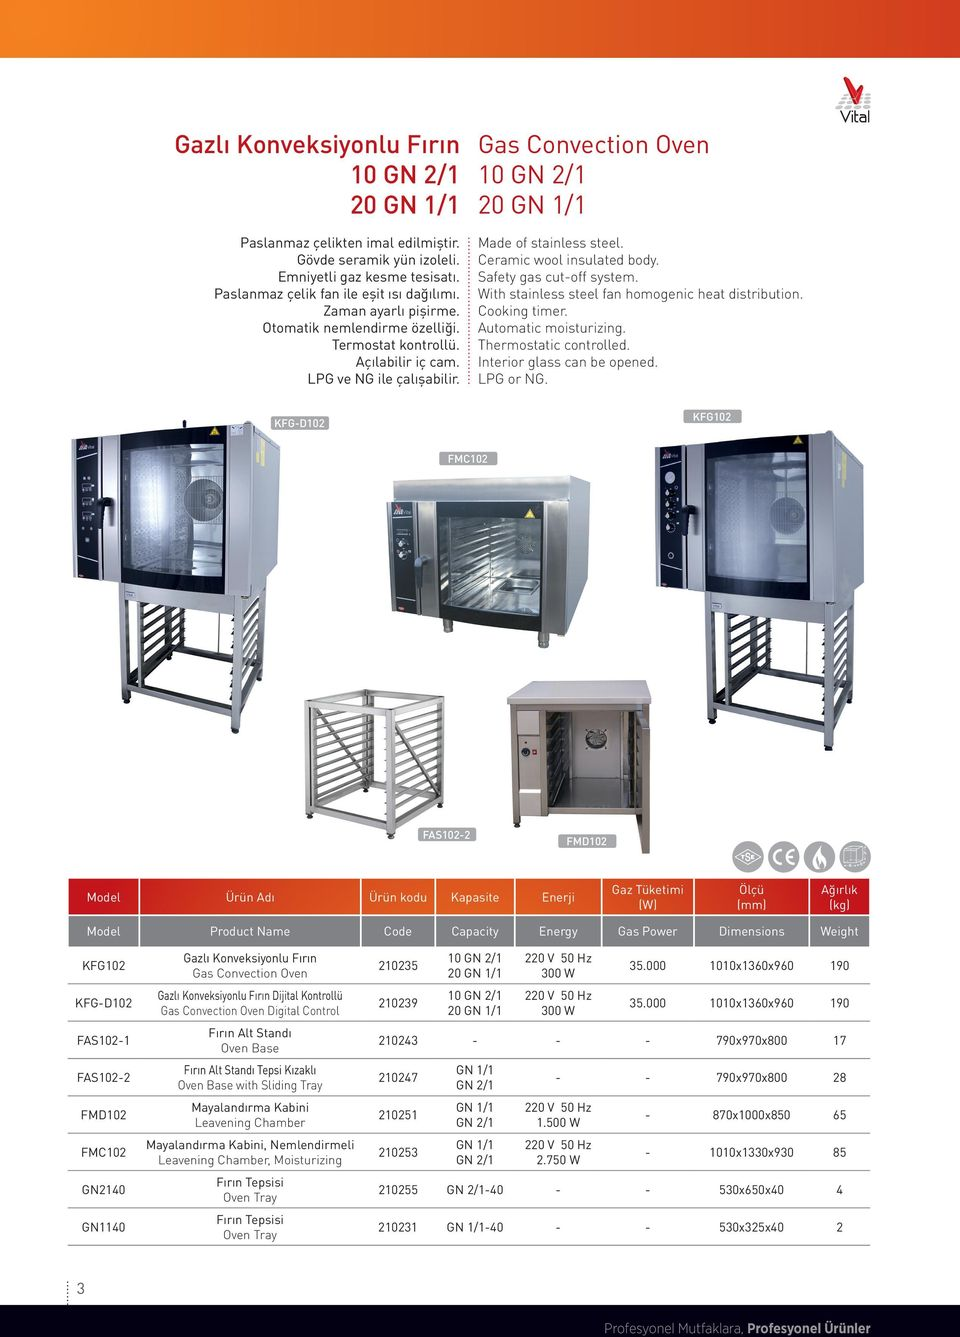 With stainless steel fan homogenic heat distribution. Cooking timer. Automatic moisturizing. Interior glass can be opened. LPG or NG.